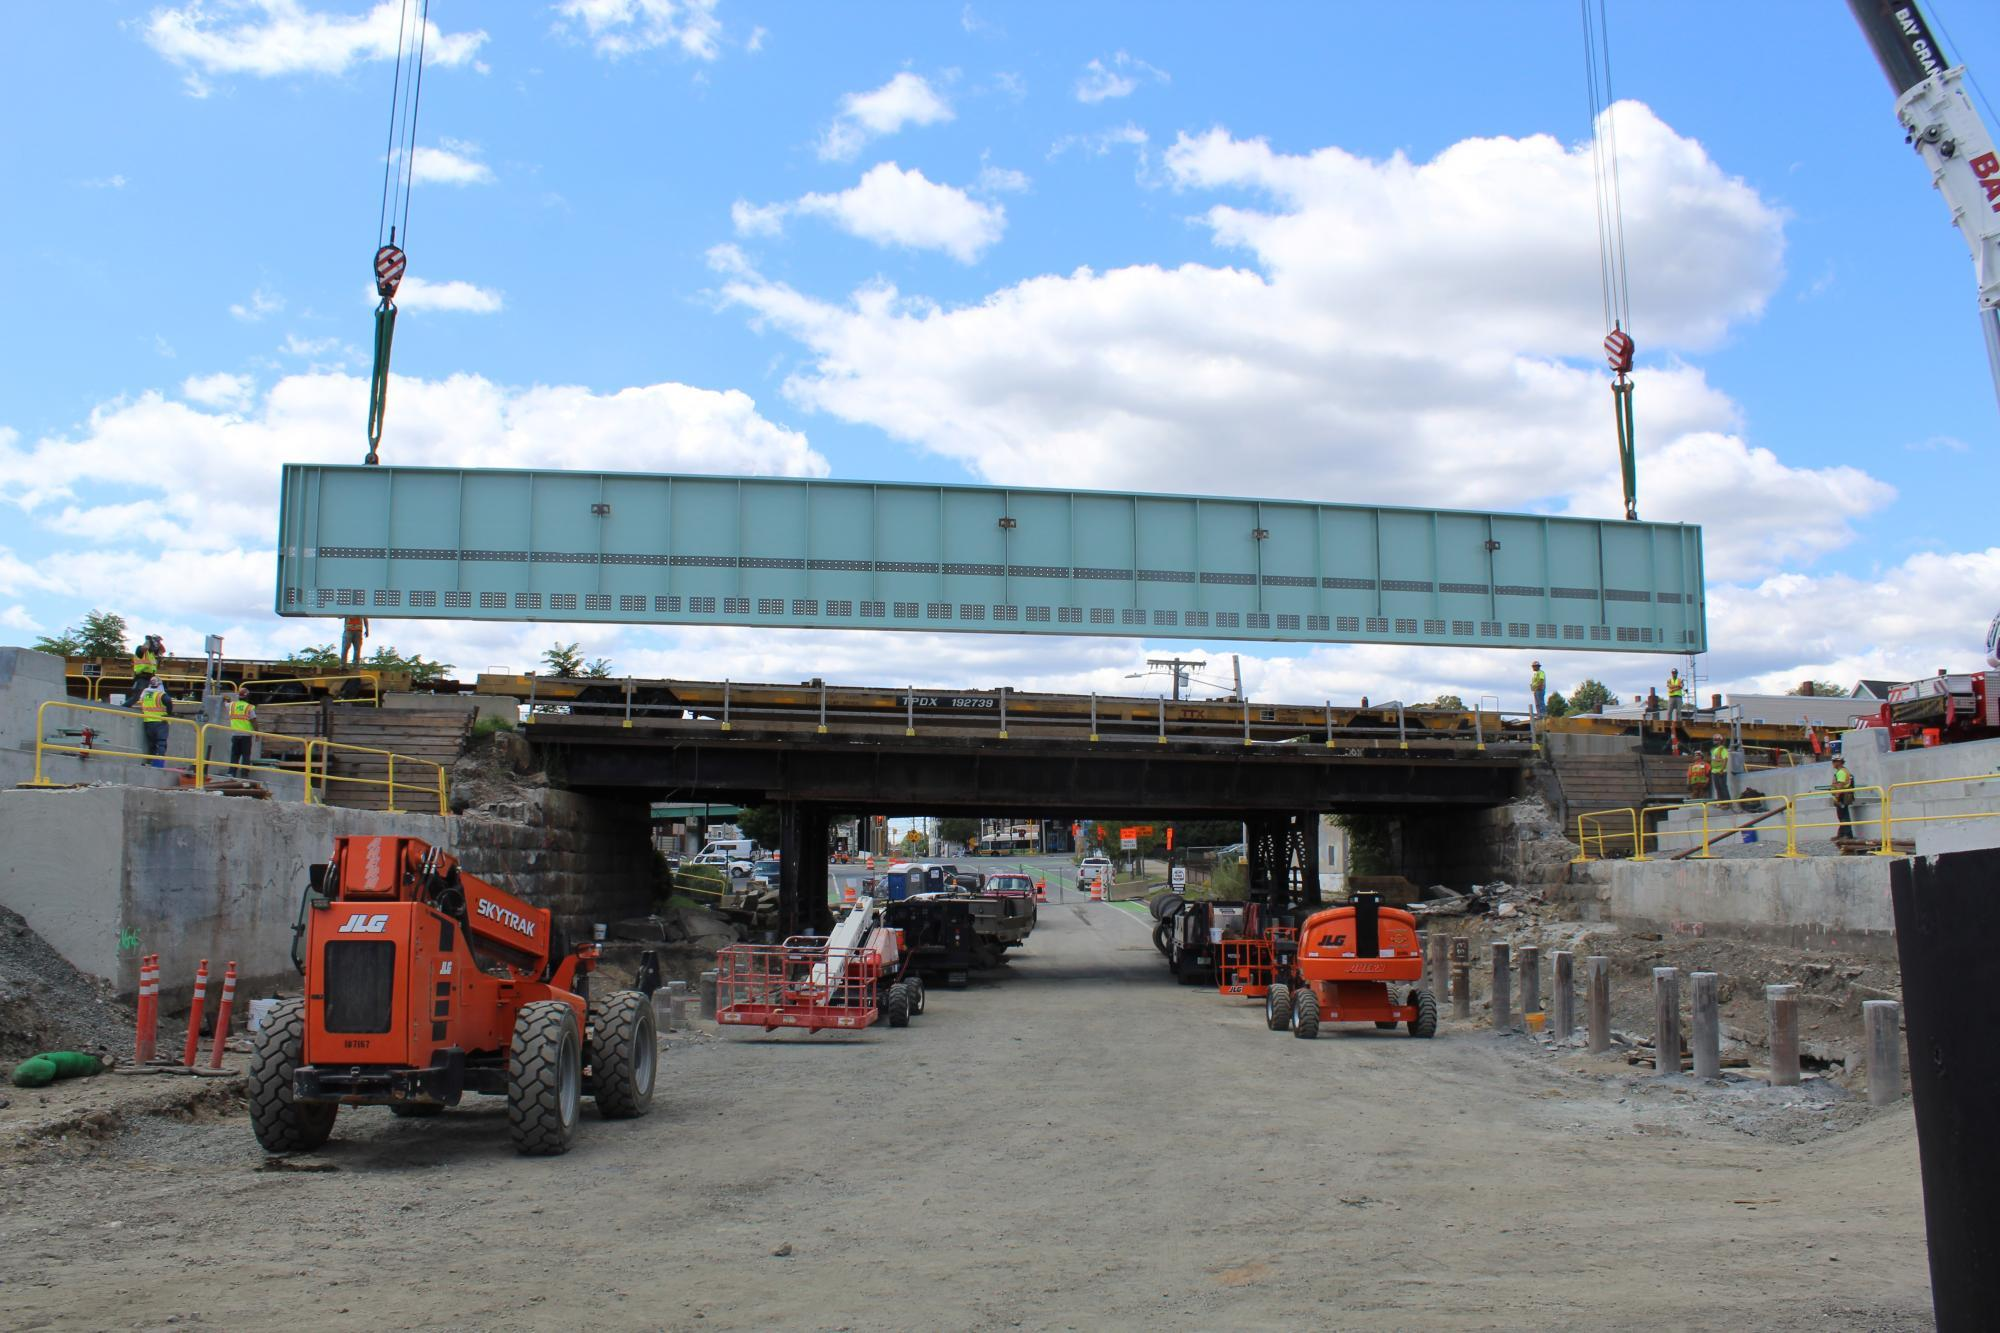 A crane lowers a large, green, steel girder beam into place on the Washington Street Bridge/Underpass in Somerville. They are the first steel bridge girders to be installed as part of GLX.